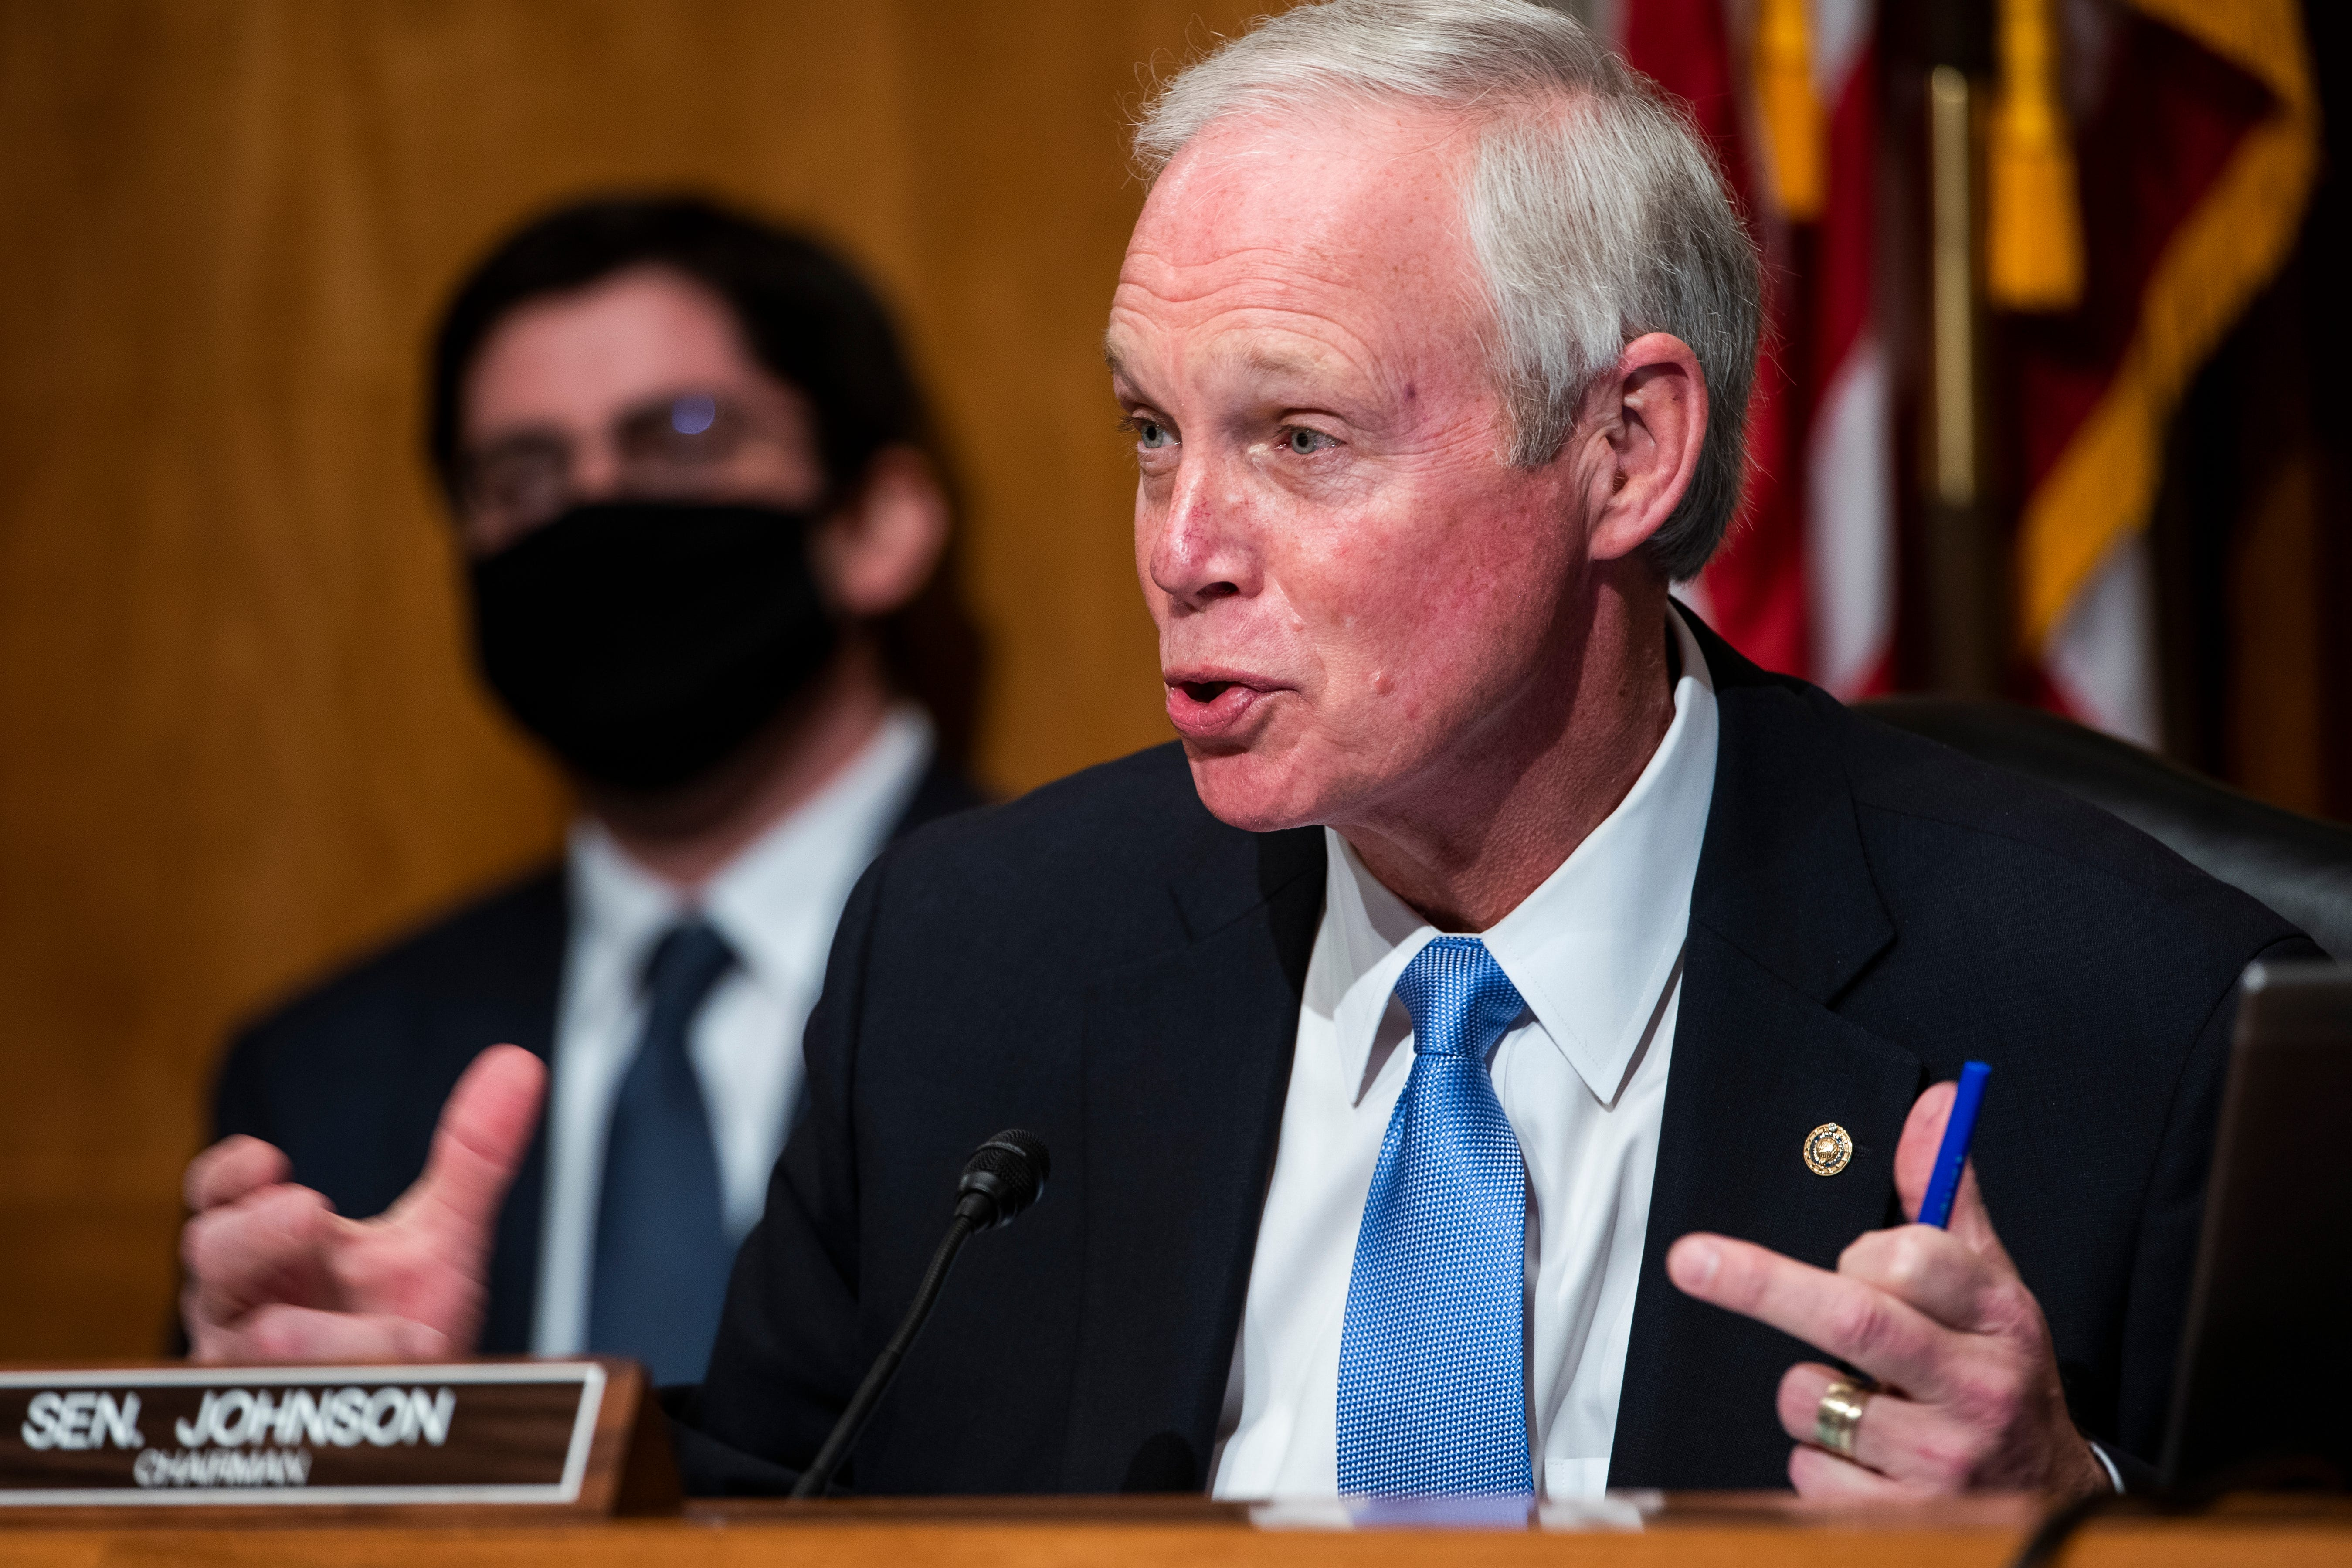 Sen. Ron Johnson, R-Wis., who was then chairman of the Senate Homeland Security and Governmental Affairs Committee, speaks during a hearing to examine claims of voter irregularities in the 2020 election.